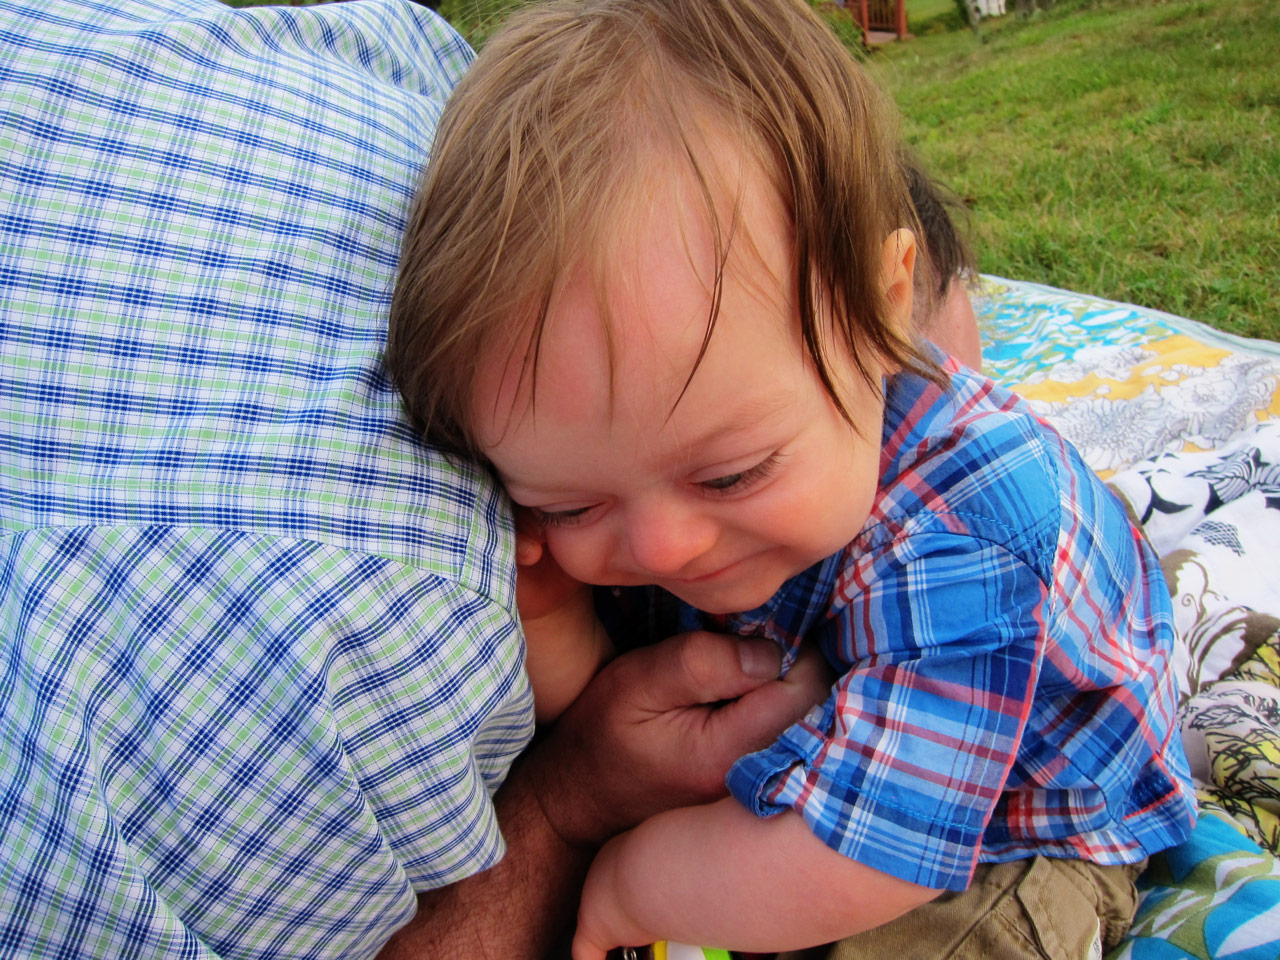 Boo being tickled by Daddy